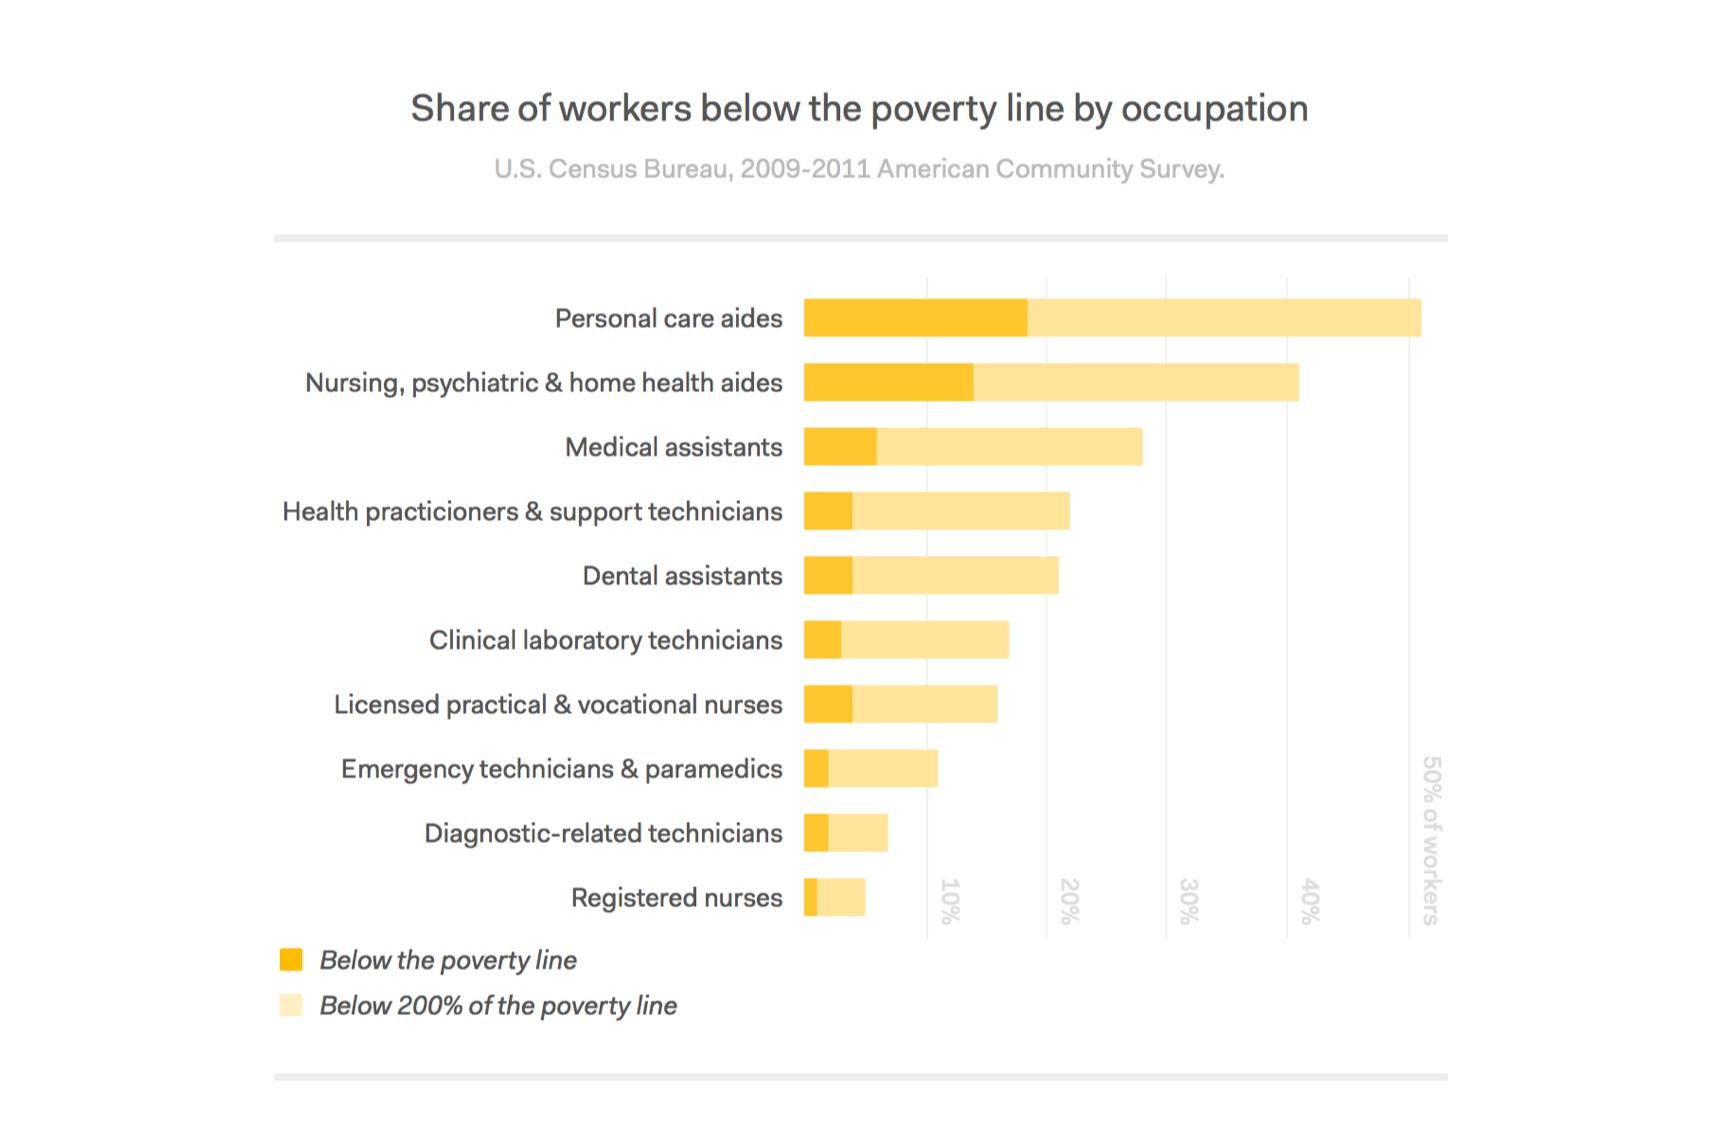 Share of workers living below poverty line